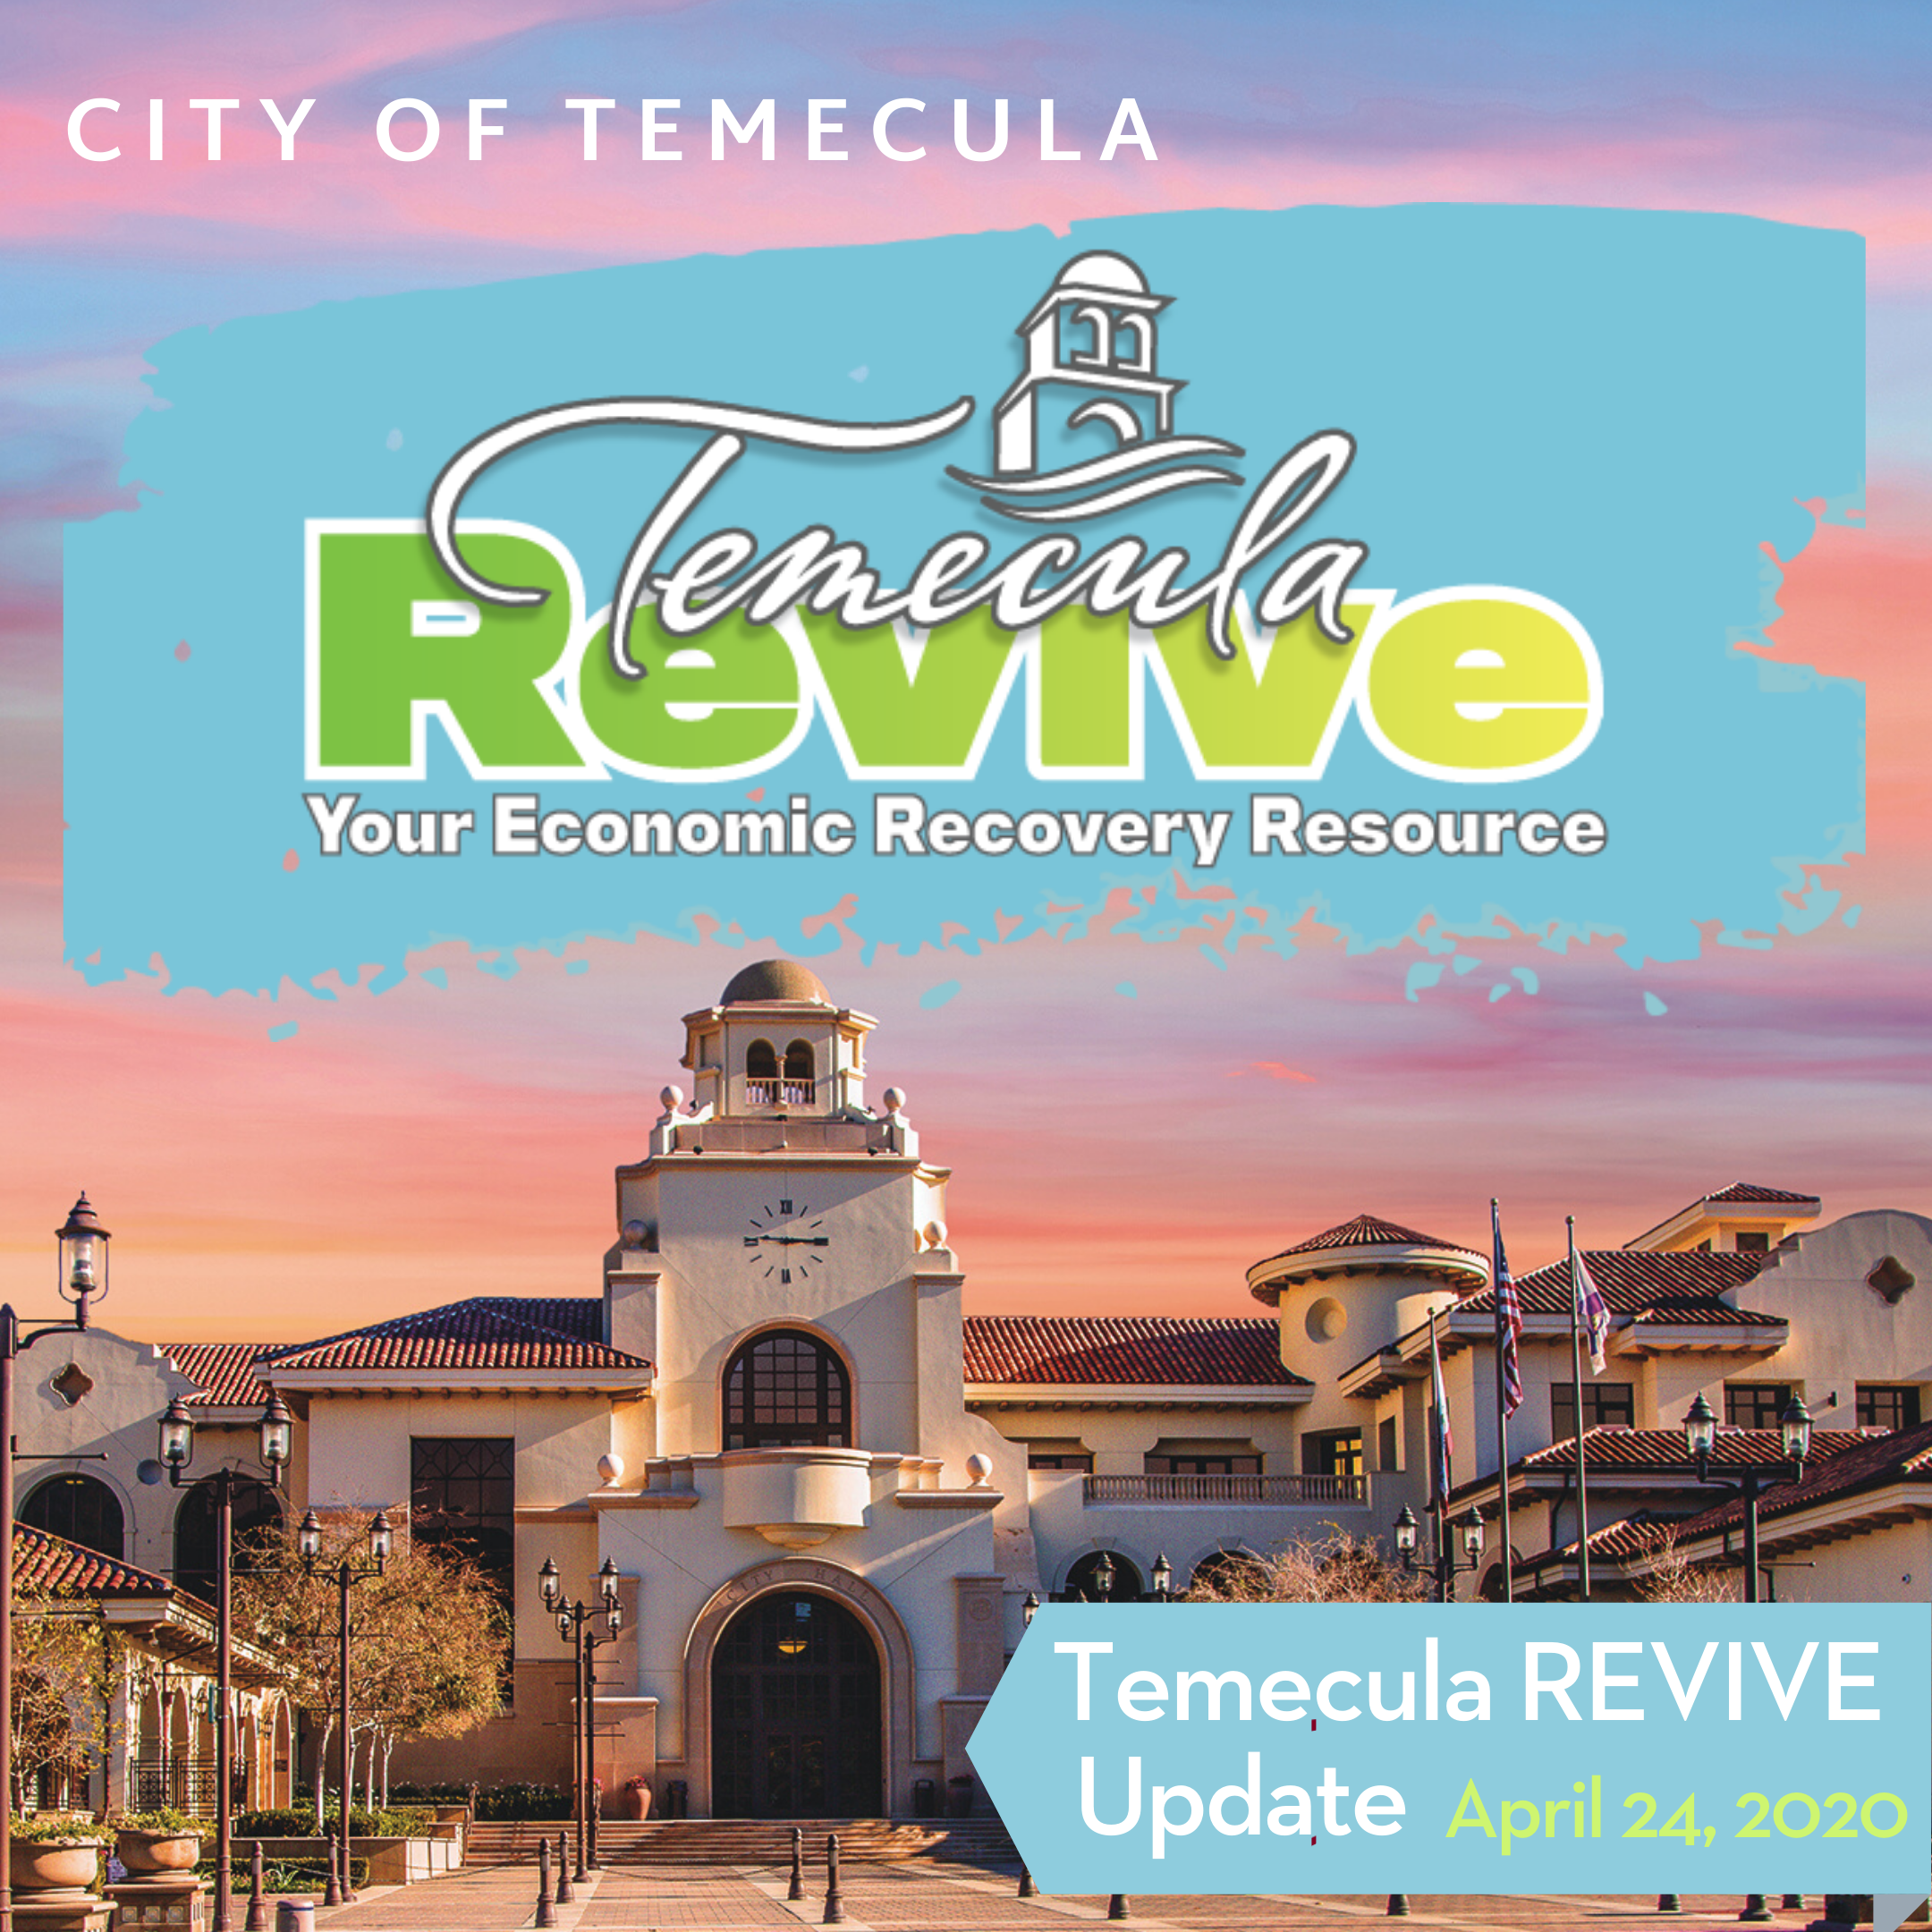 Temecula Revive update April 24